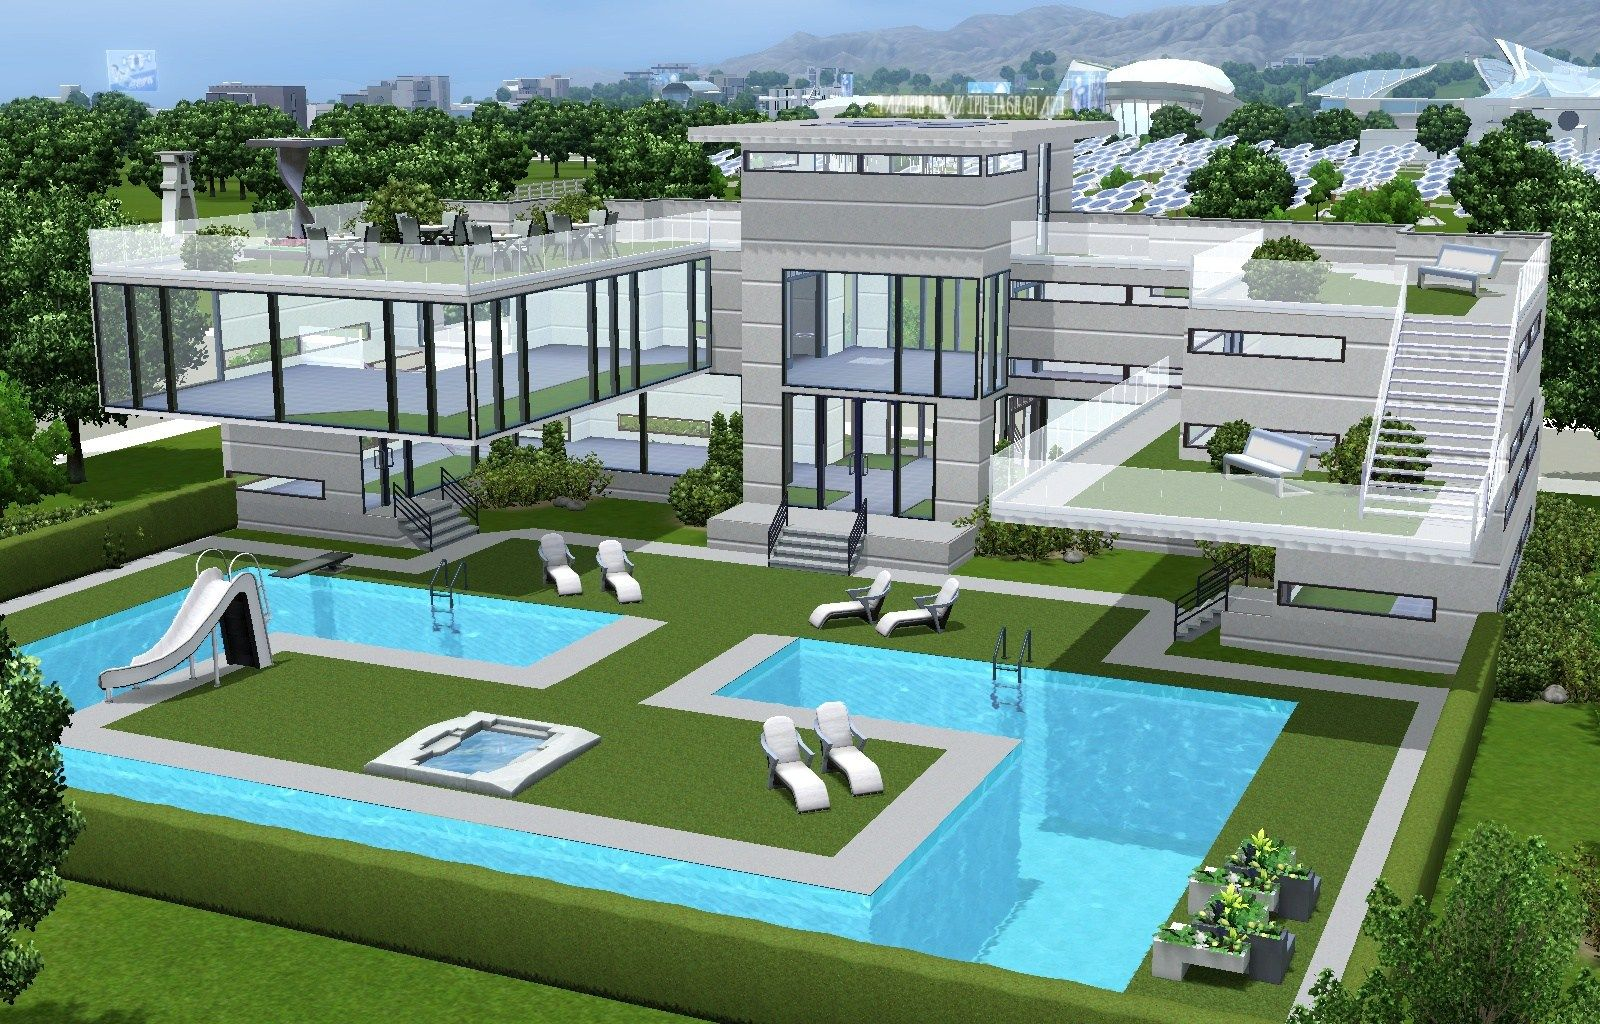 Must Have Gorgeous Sims 3 Houses and Villas